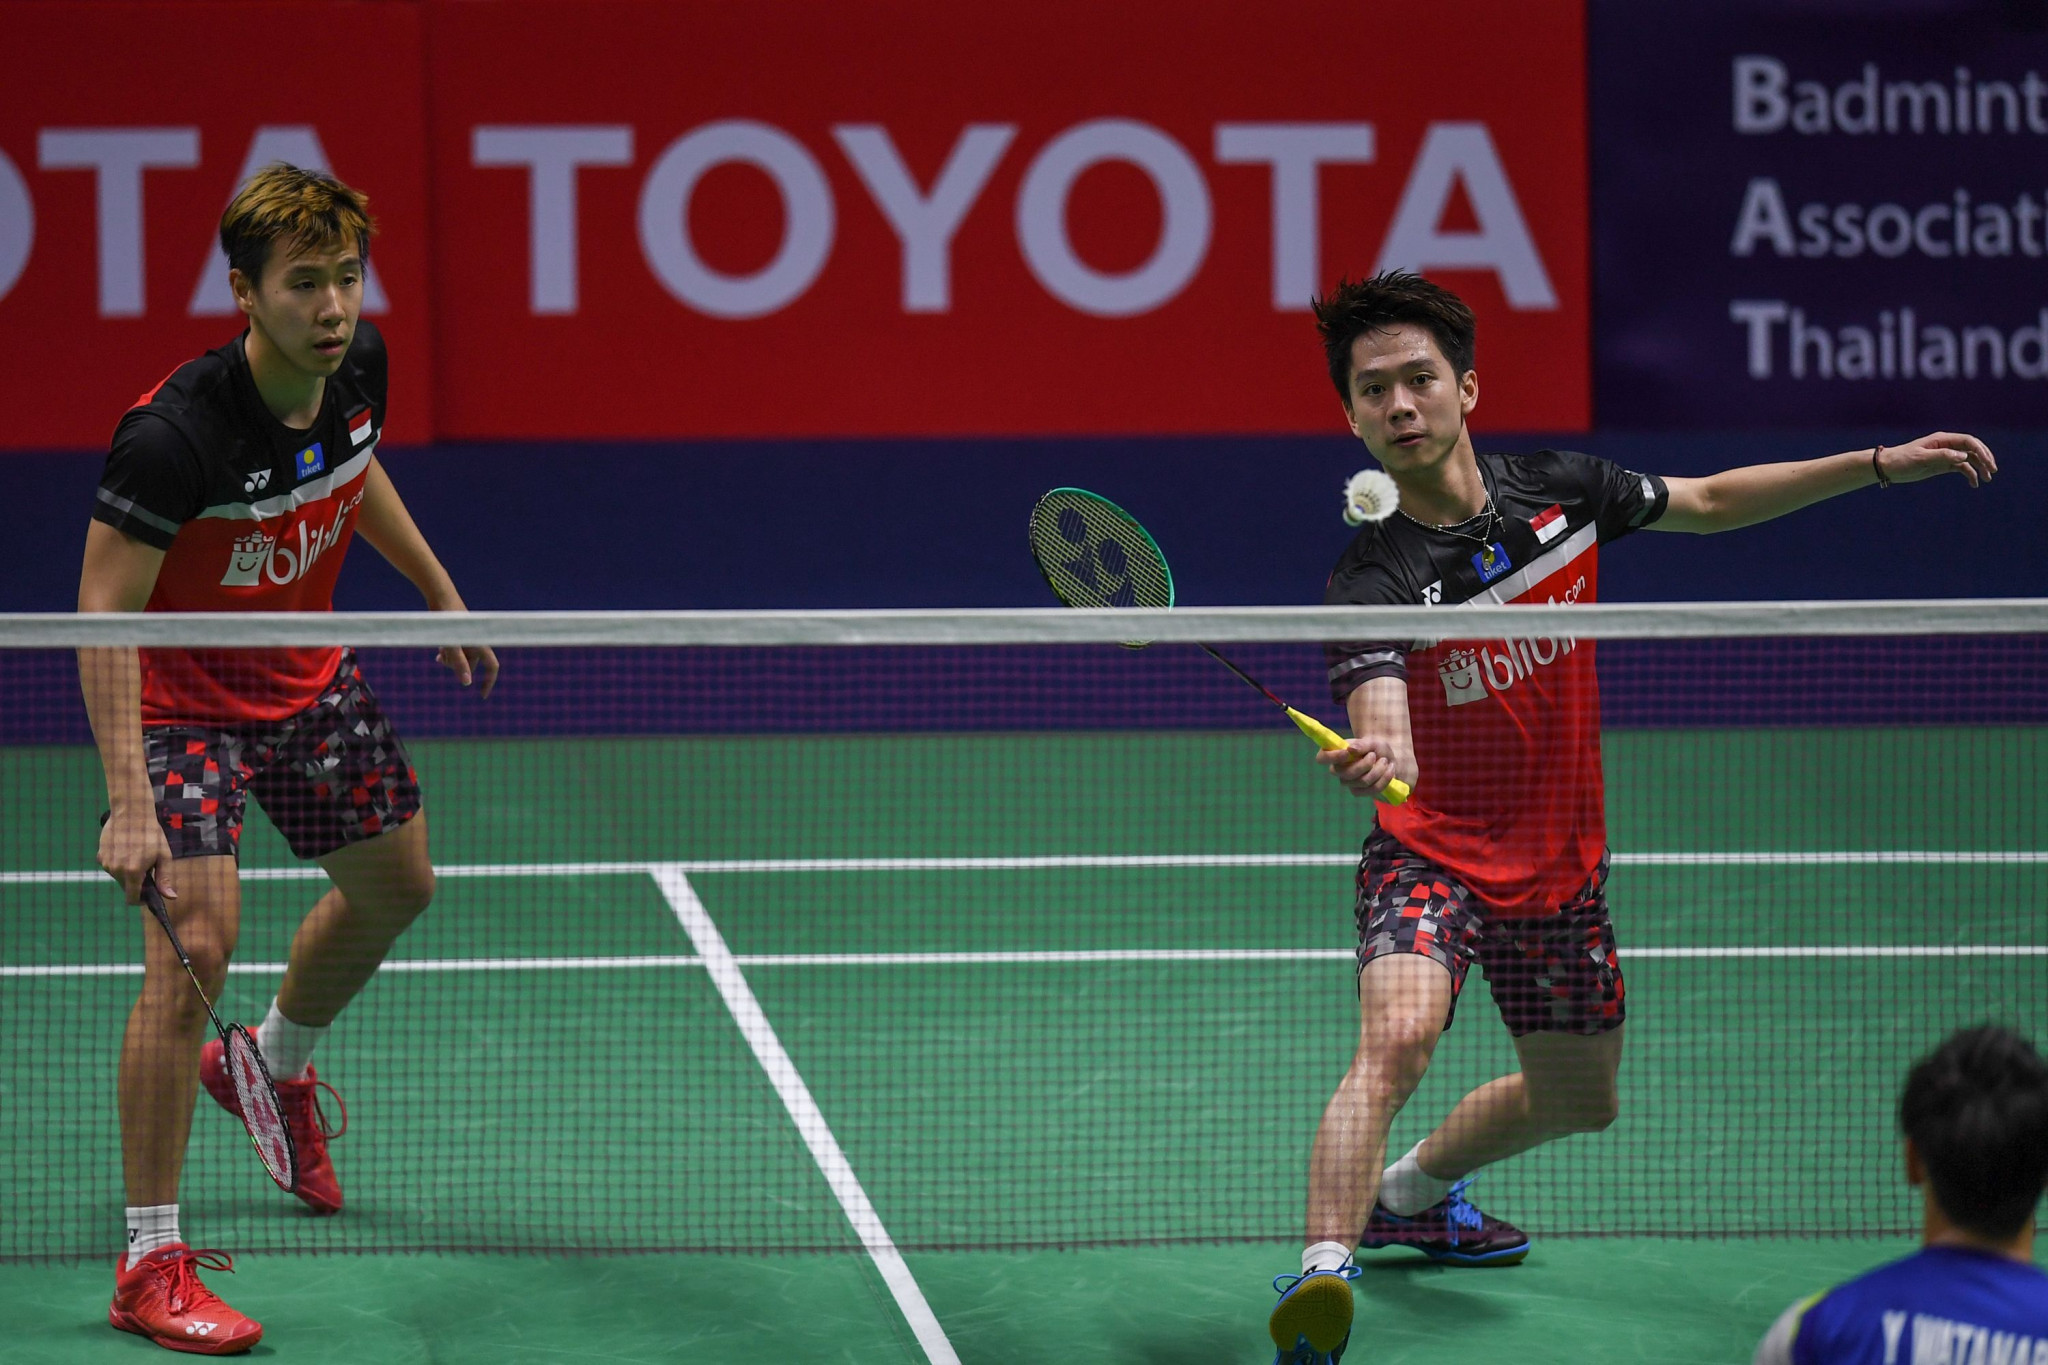 Doubles top seeds Gideon and Sukamuljo suffer shock defeat at BWF World Championships